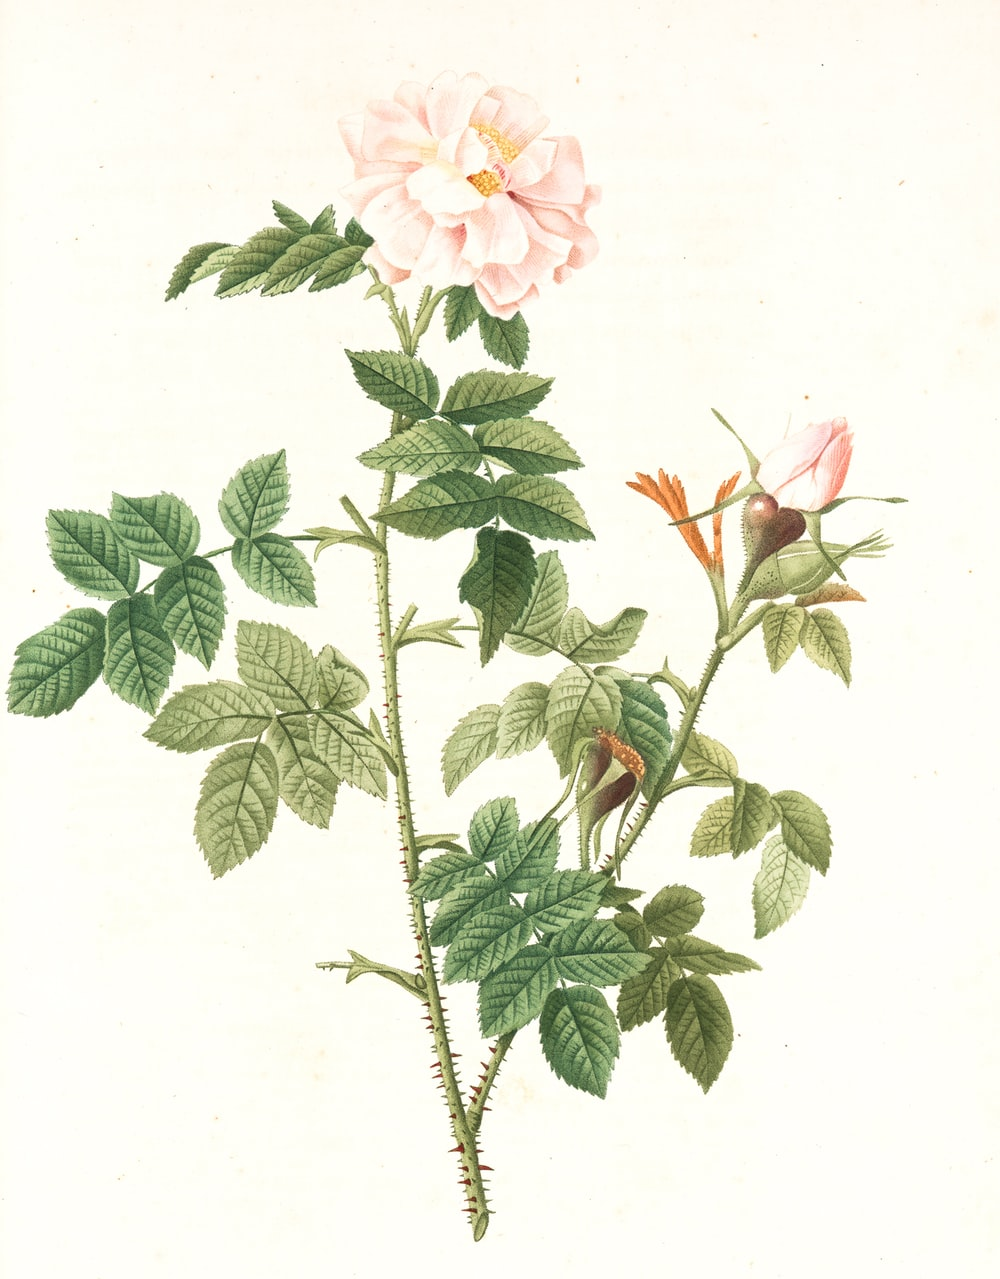 pink and white flowers with green leaves